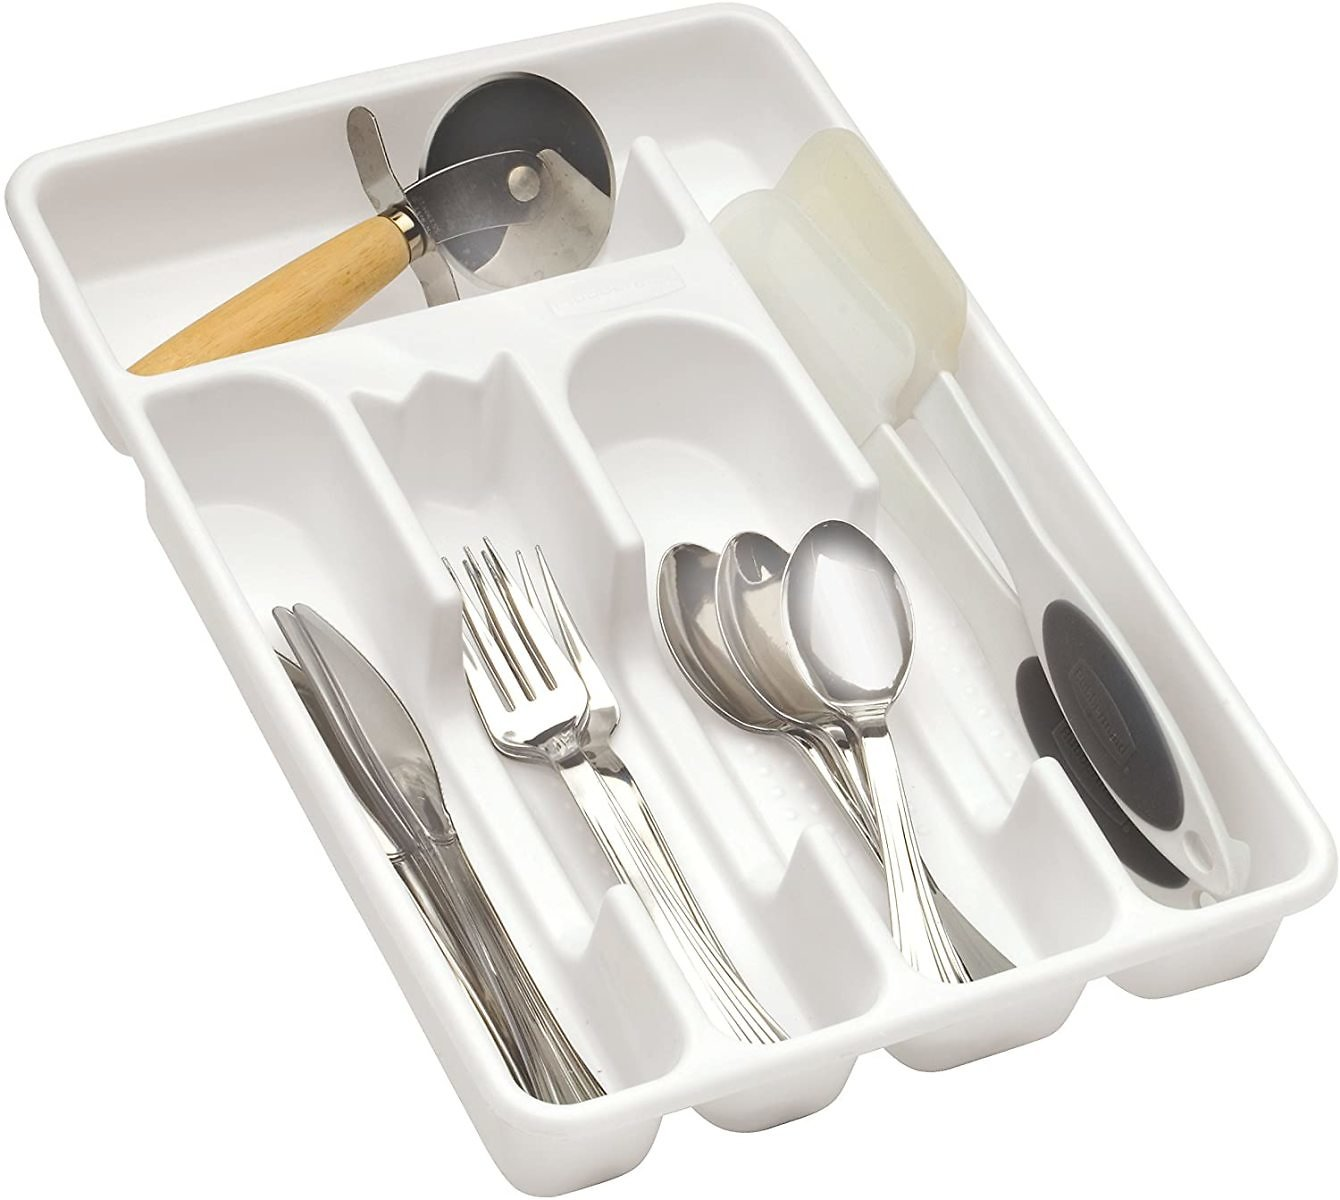 Rubbermaid Cutlery Tray